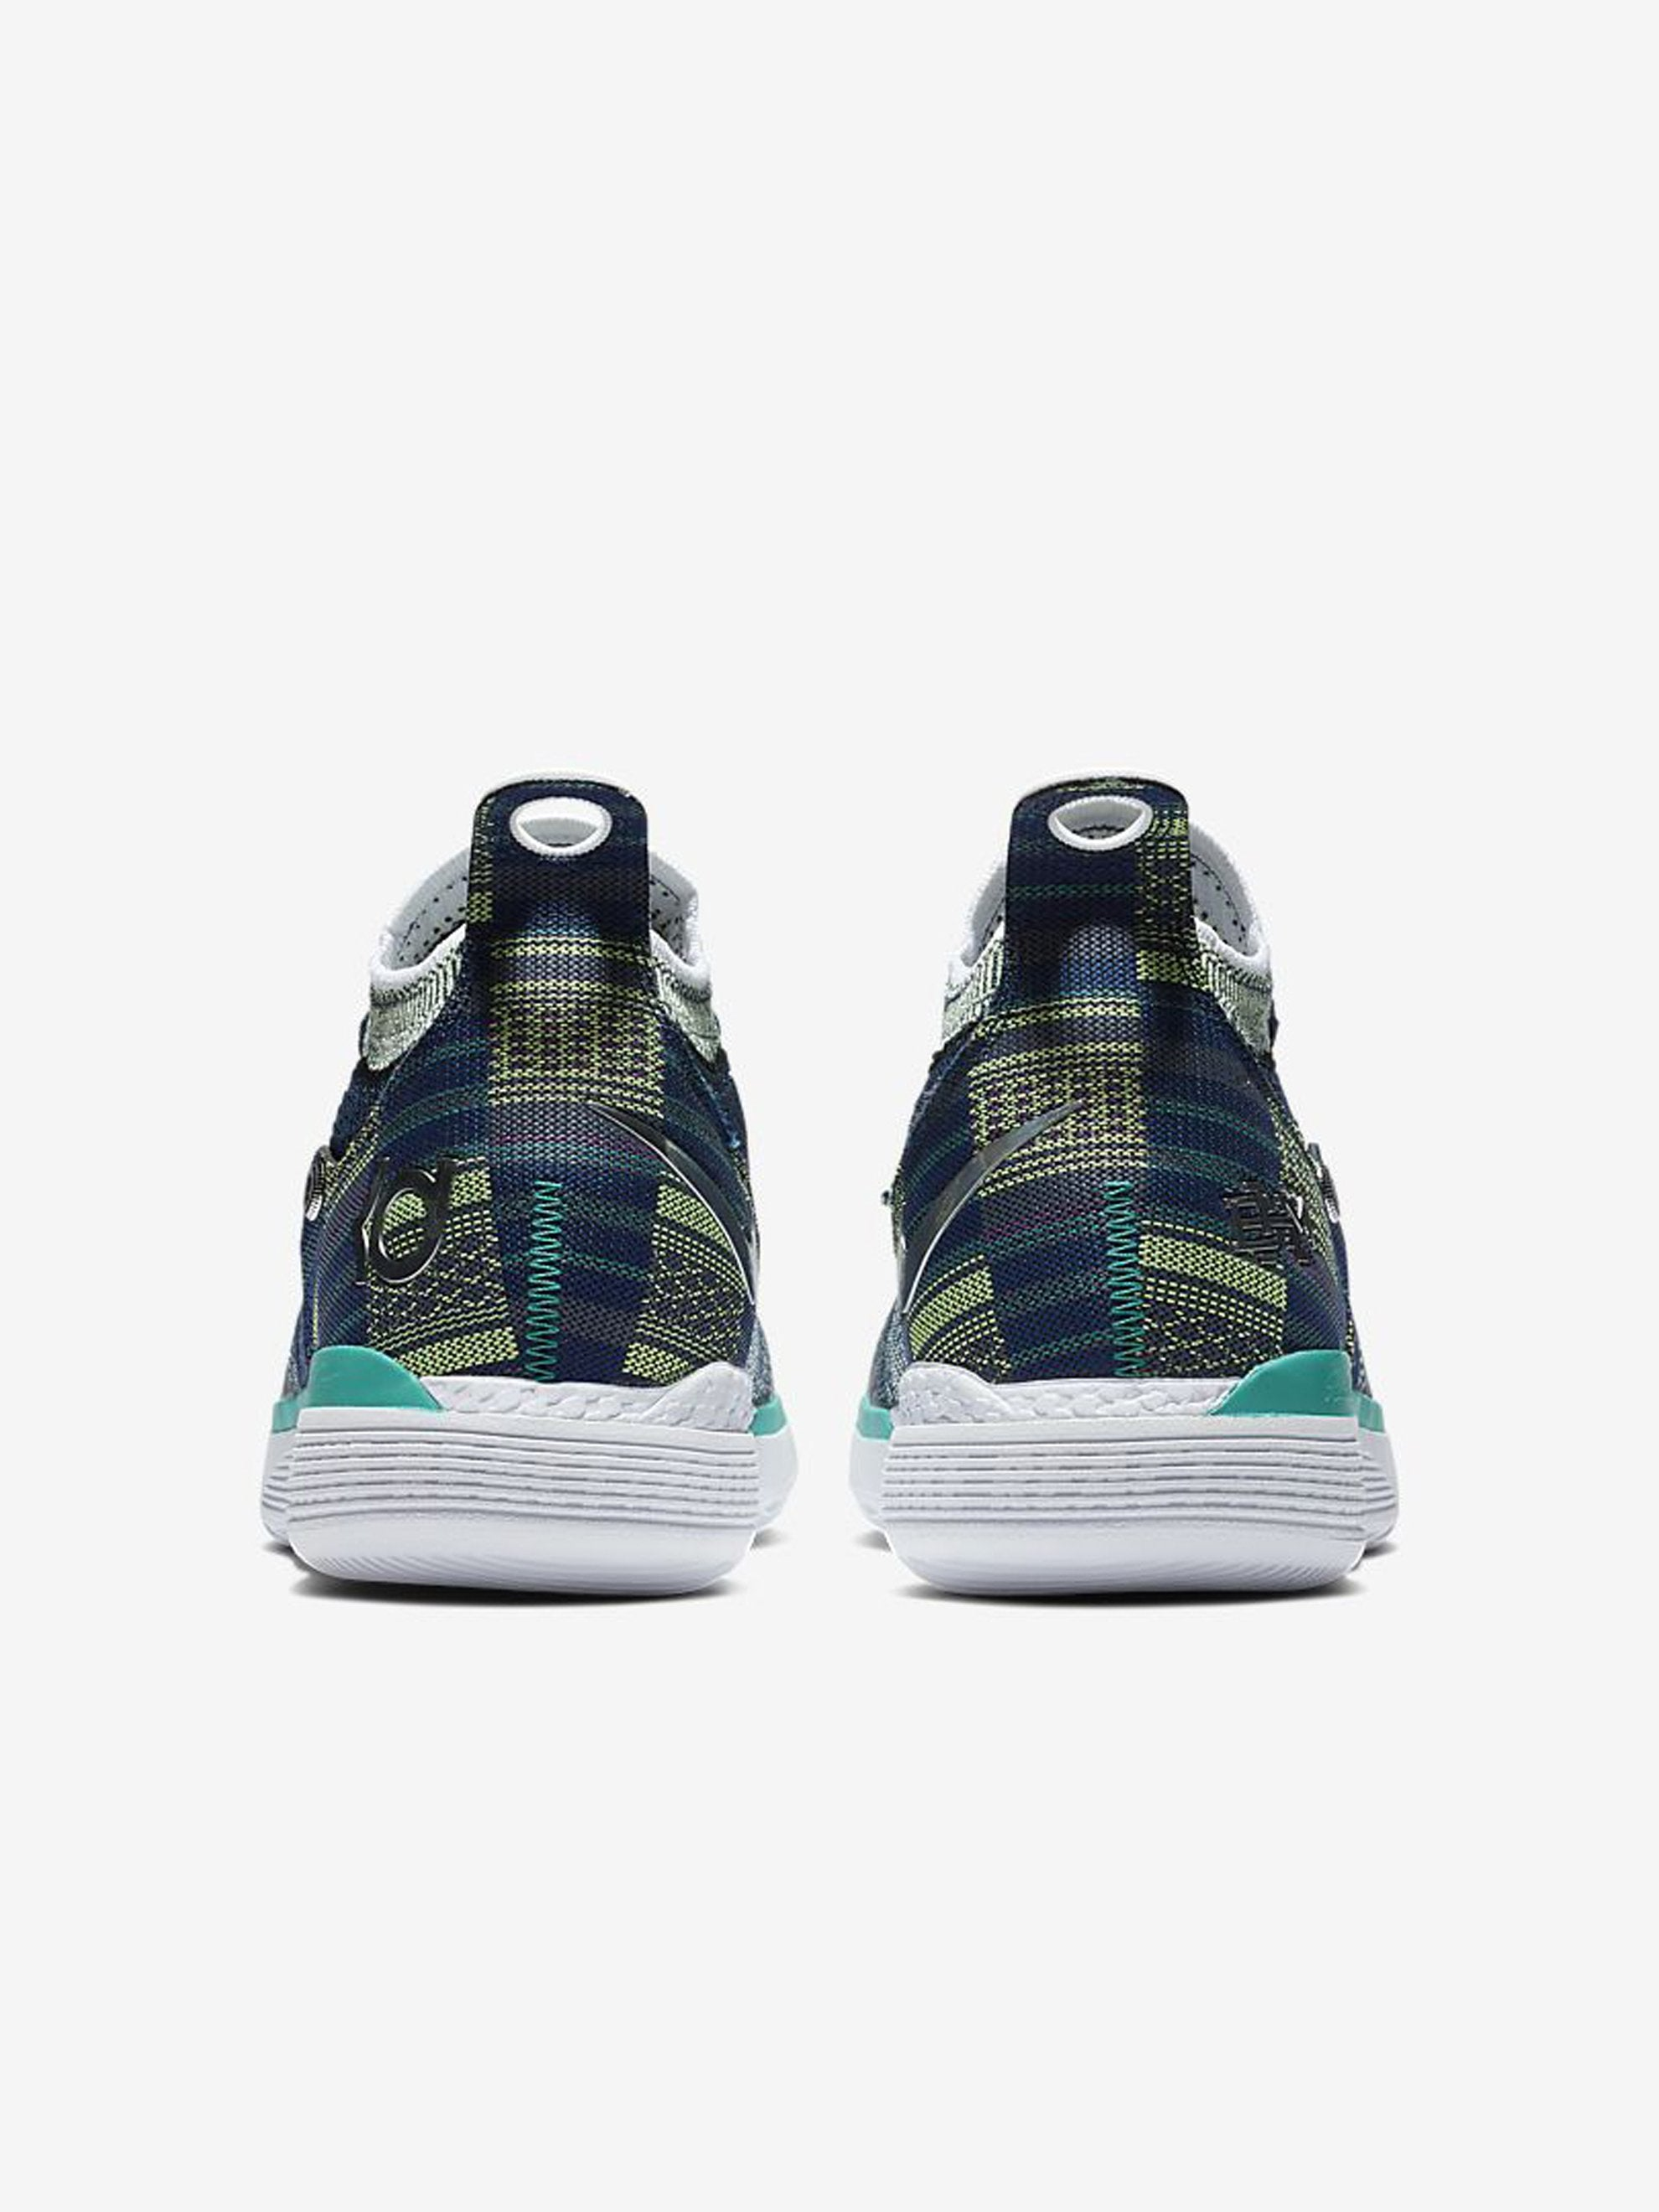 5a45fca3c4d18c Buy NIKE Nike Zoom KD11 BHM Online at UNION LOS ANGELES